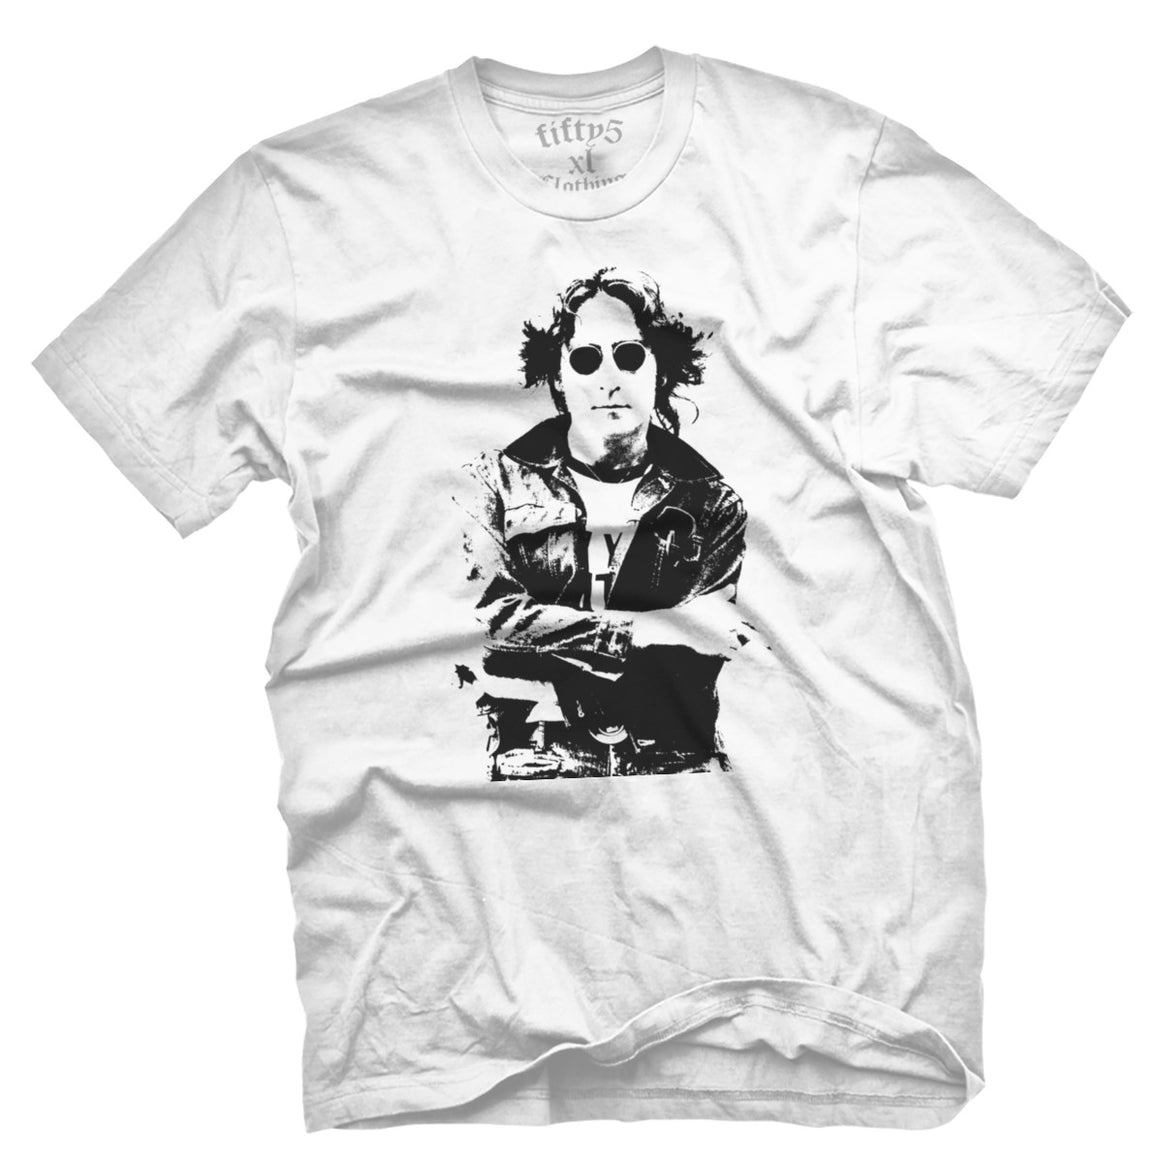 Fifty5 Clothing John Lennon Men's T Shirt